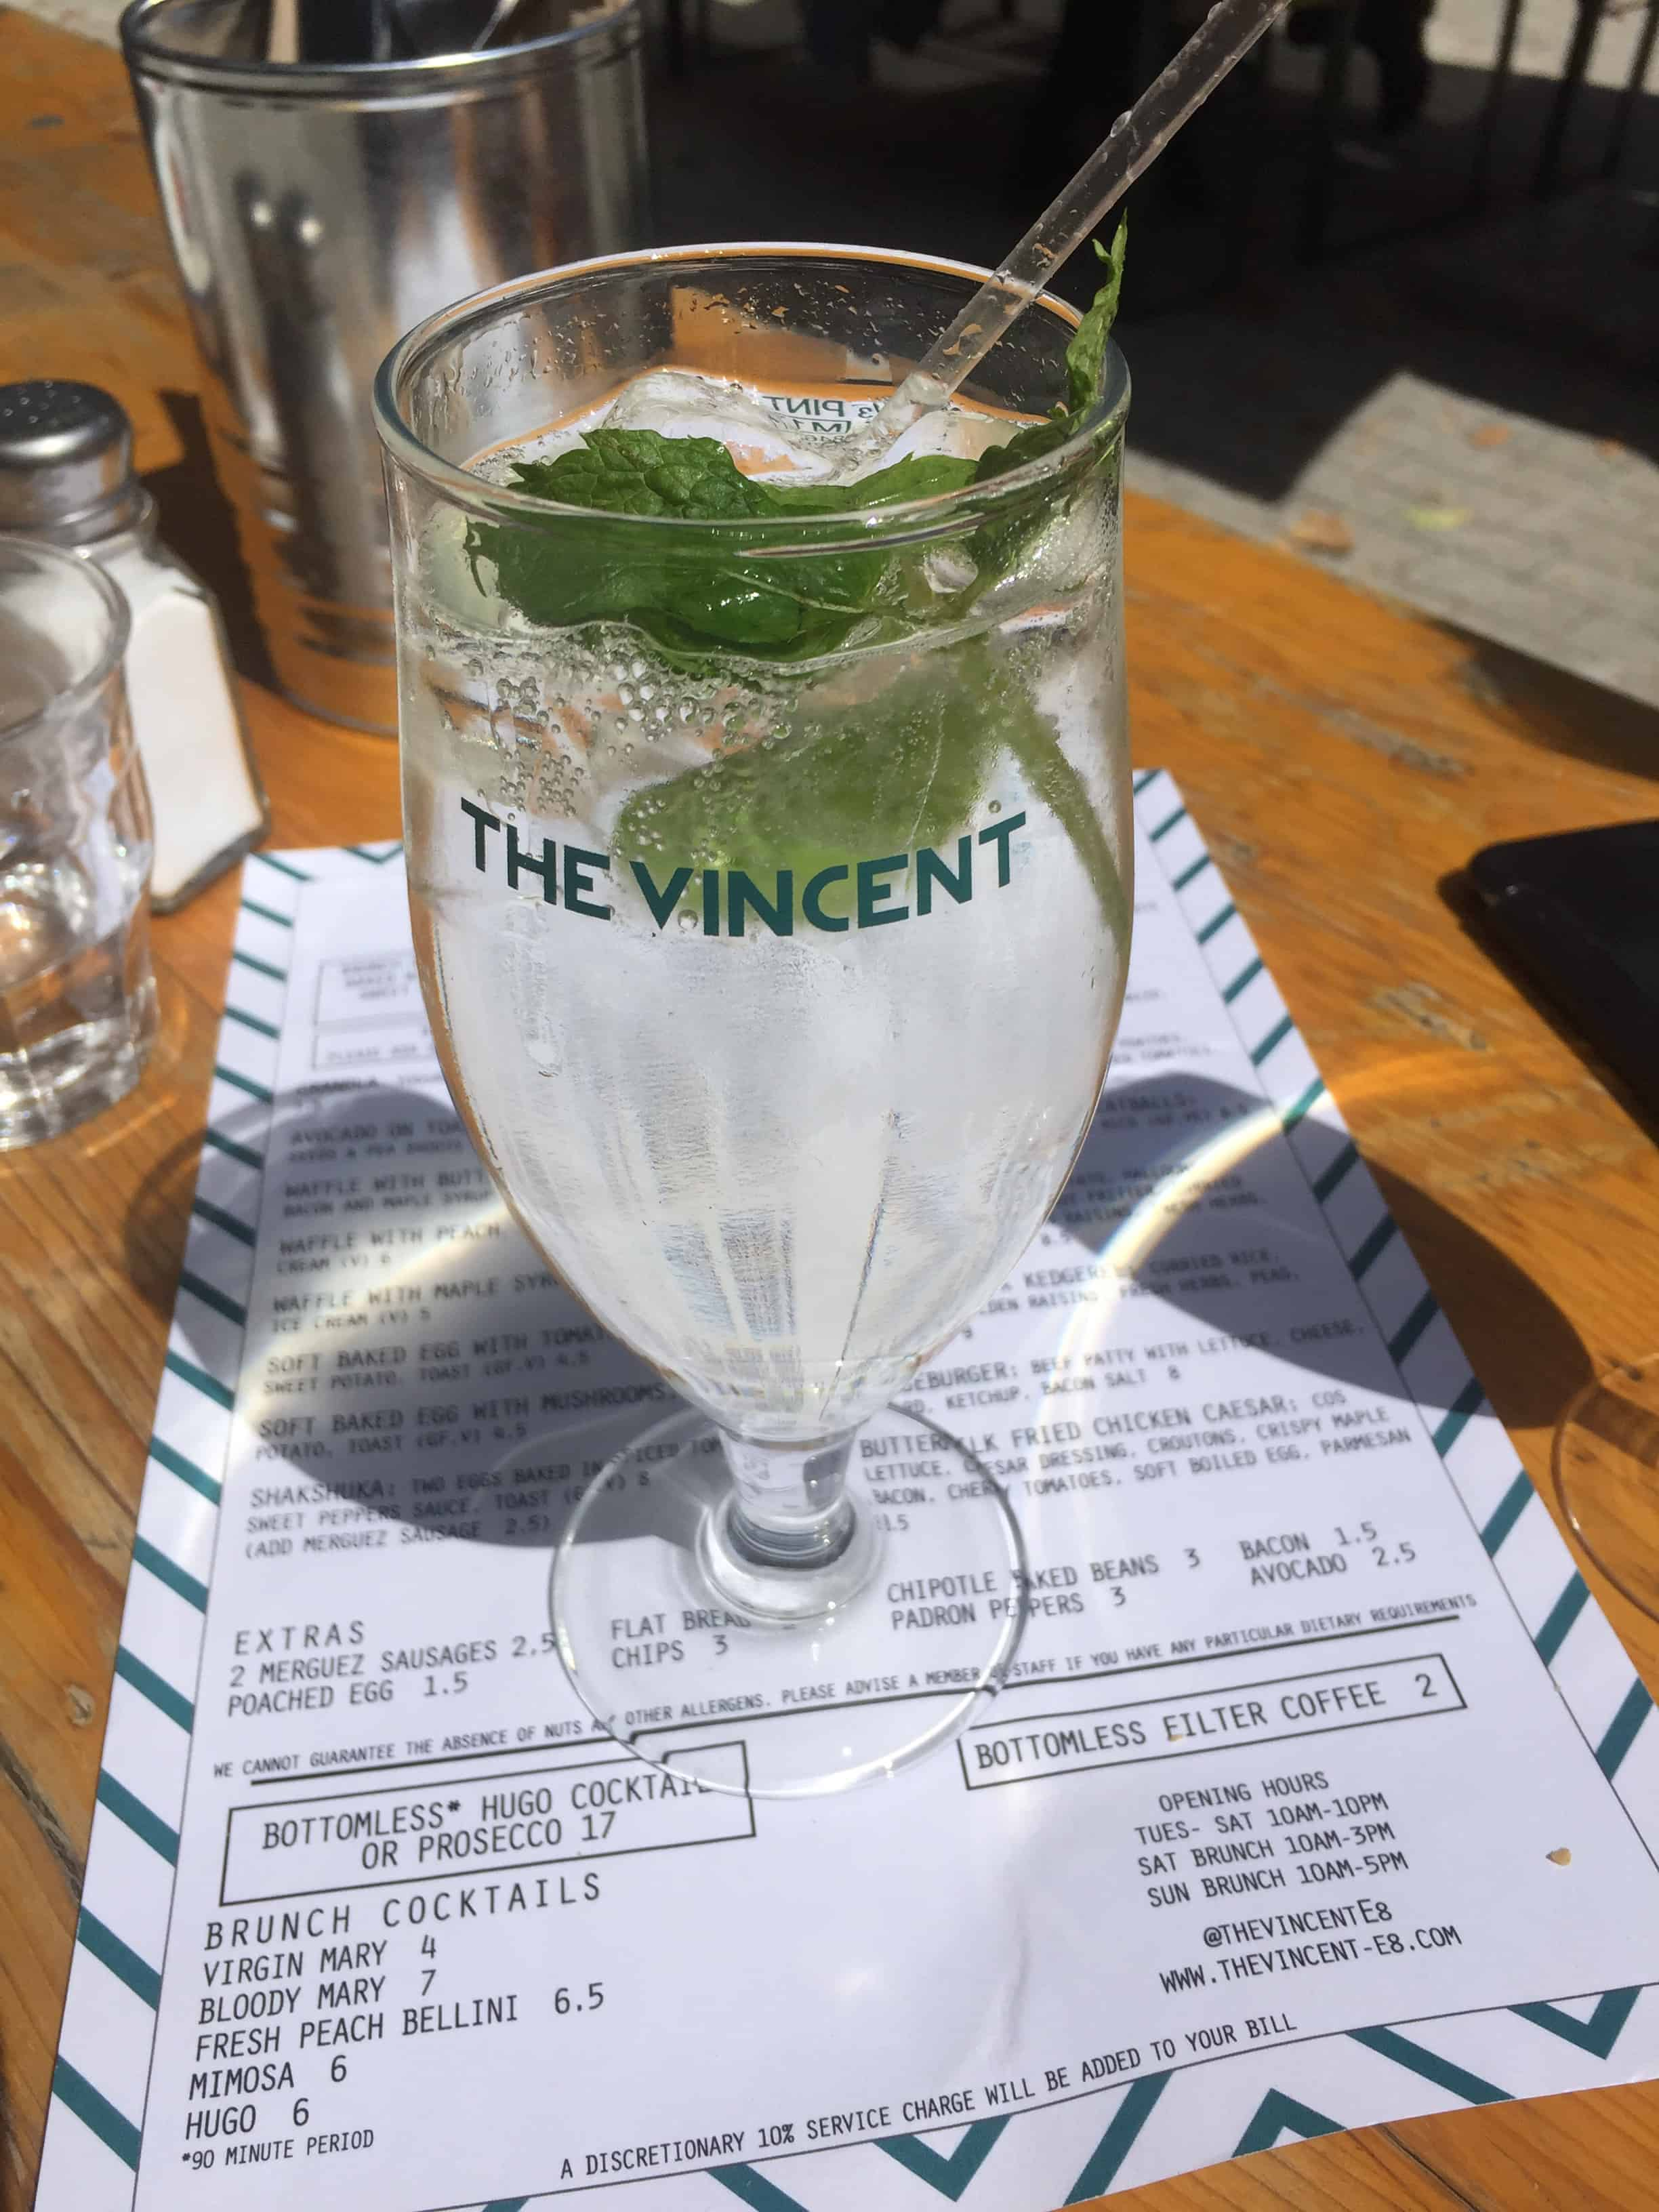 The Vincent Restaurant in Hackney